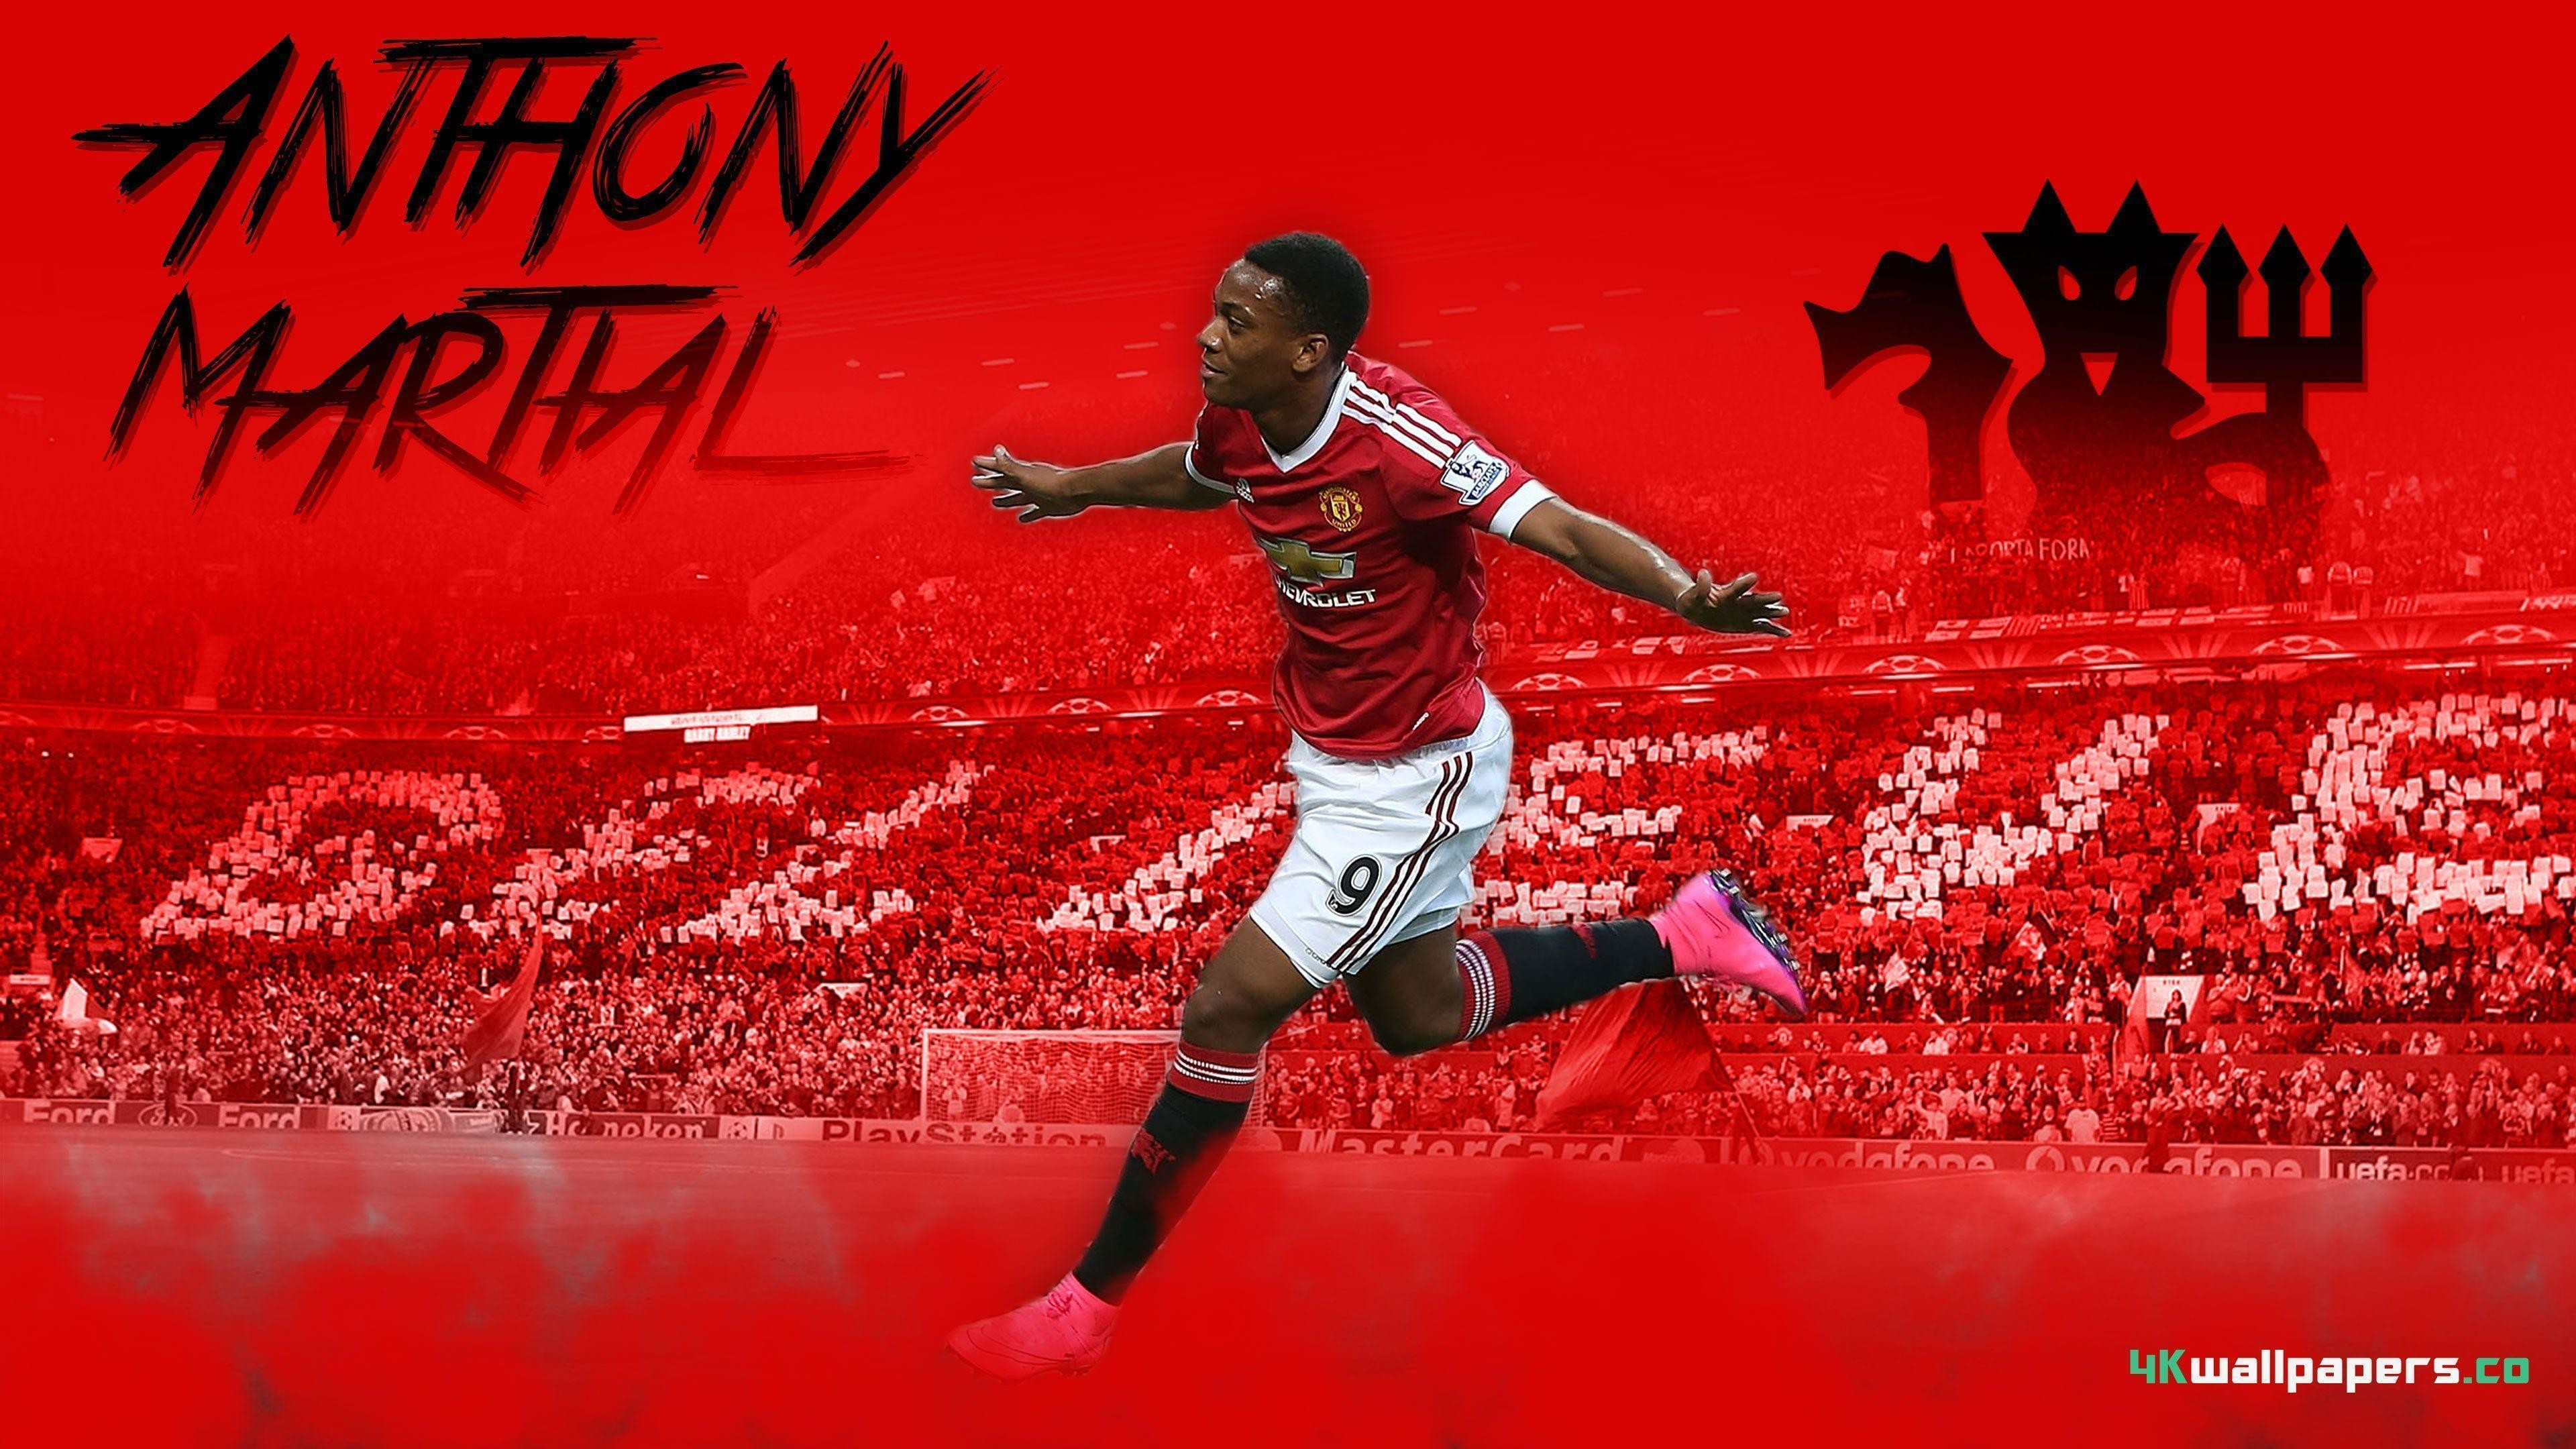 df6a63cbe 3840x2160 Anthony Martial 2015 Manchester United 4K Wallpapers free desktop  .